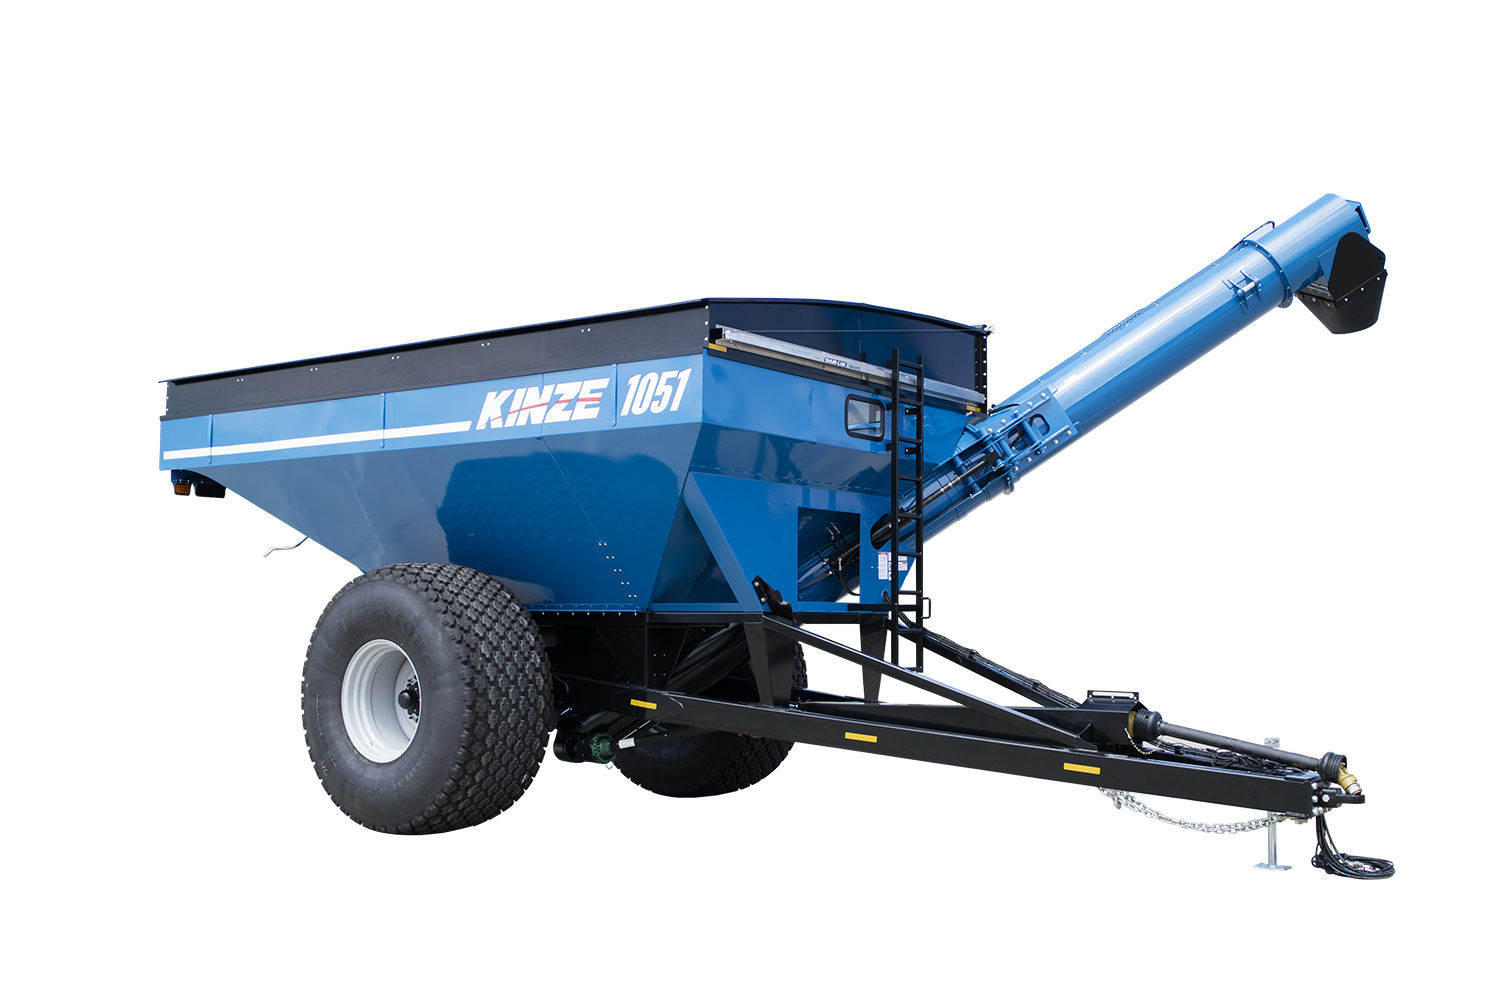 Custom stretch limo golf carts portfolio sold 1 likewise Country Cottage Kitchen Island Table With Drop Leaves P 228050 as well 6020 Kinze Introduces Two Single Auger Grain Carts further Heavy Duty T Post Clothesline Poles as well TS 1BMC. on two carts folding